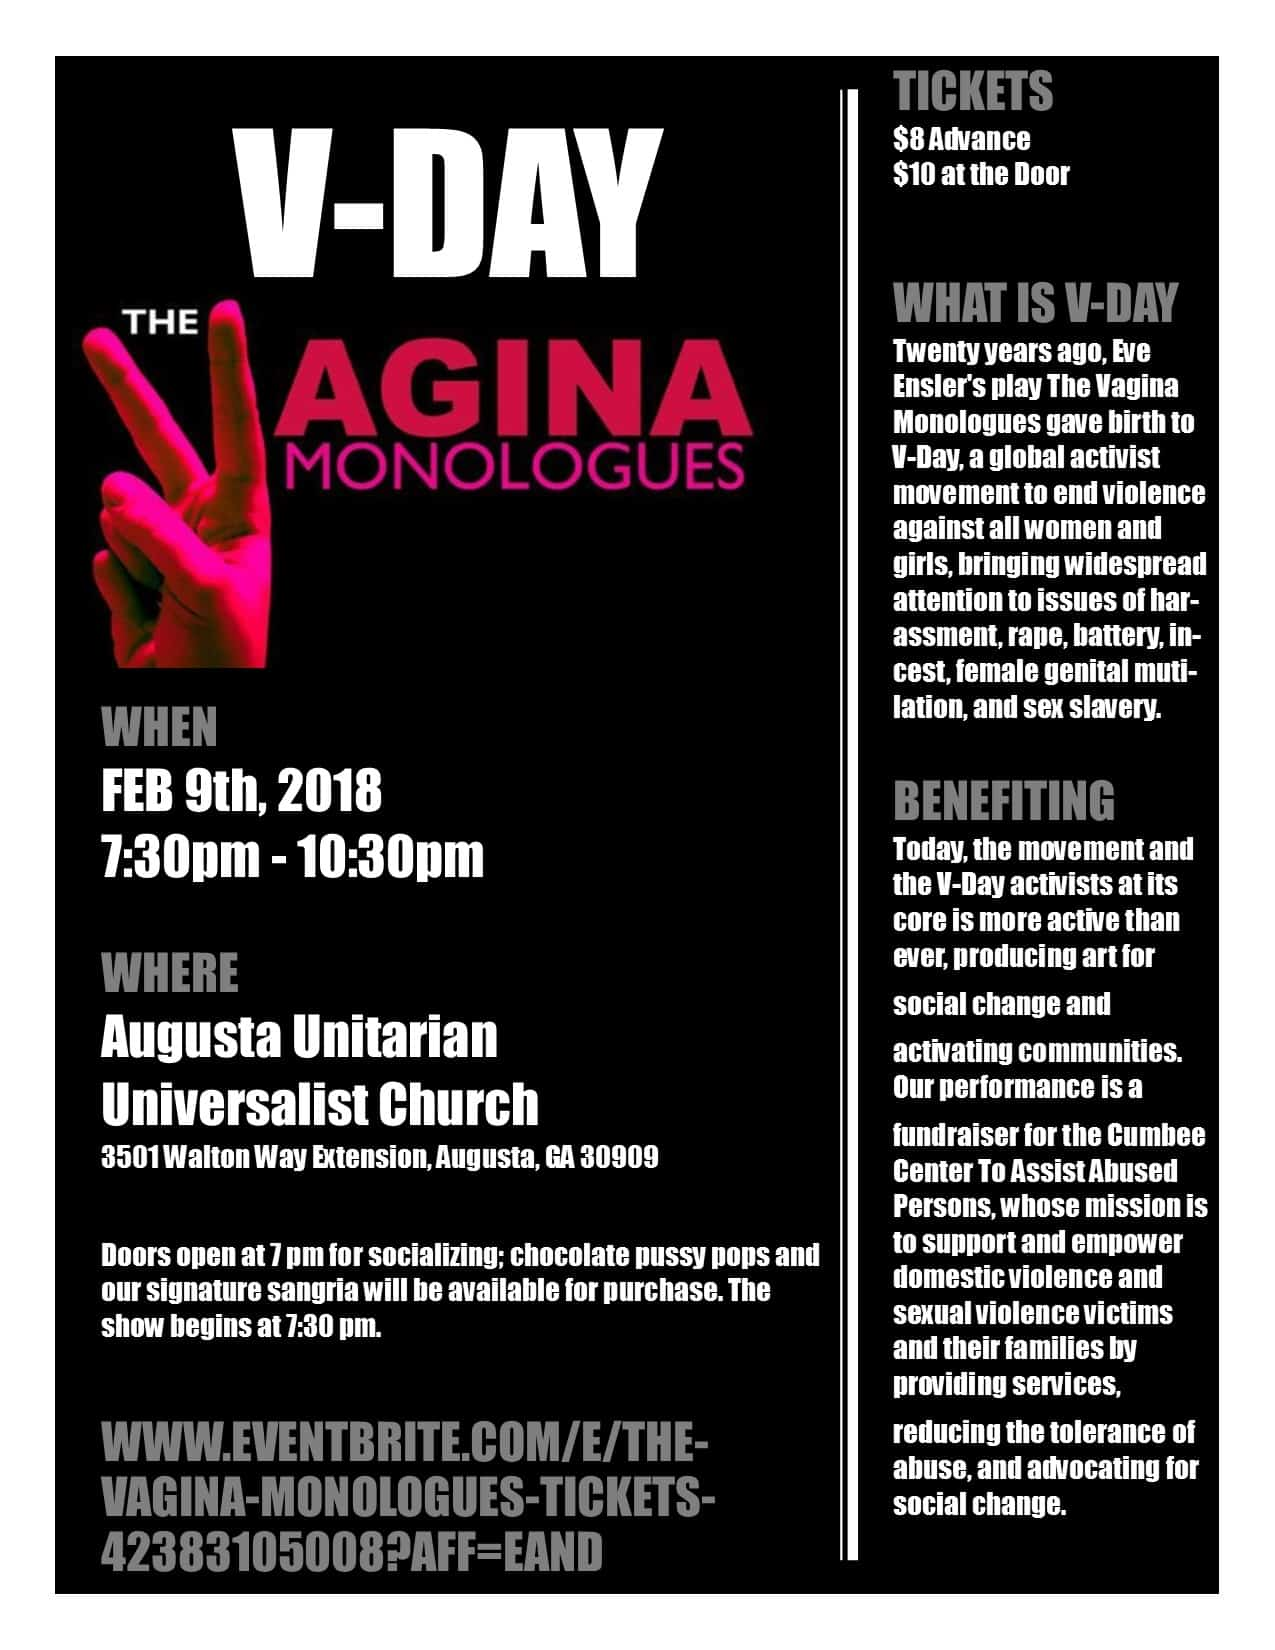 V-Day Poster - The Vagina Monologues event at Augusta UU